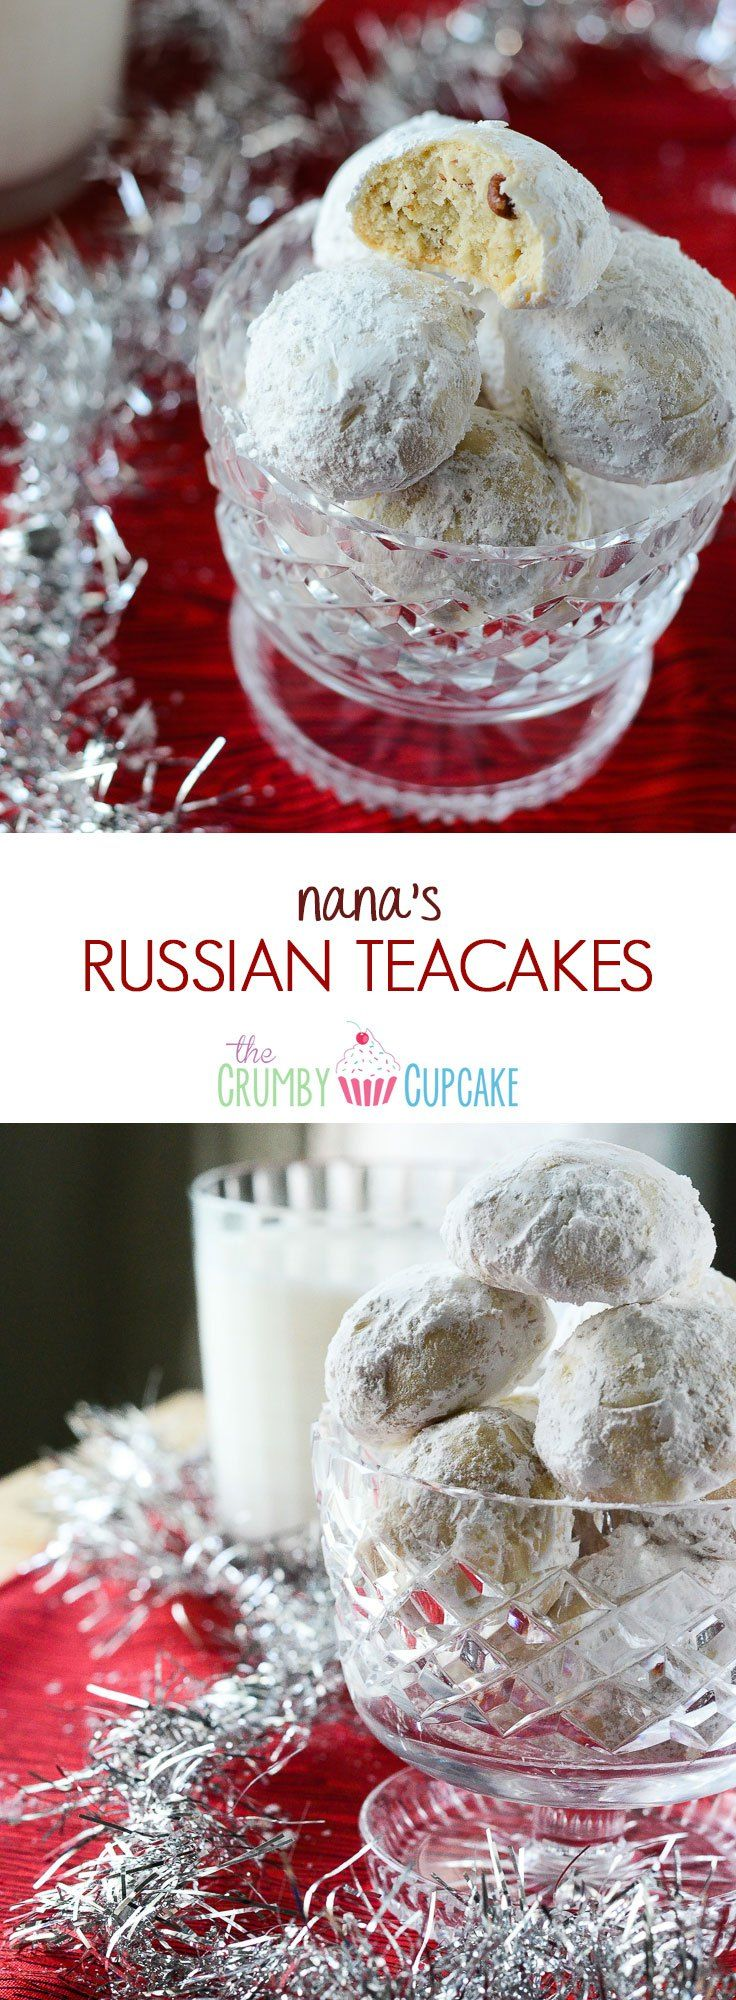 Nanas russian teacakes straight out of nanas recipe book these straight out of nanas recipe book these nut balls are the same soft buttery melt in your mouth teacakes found all over the world at christmastime forumfinder Images